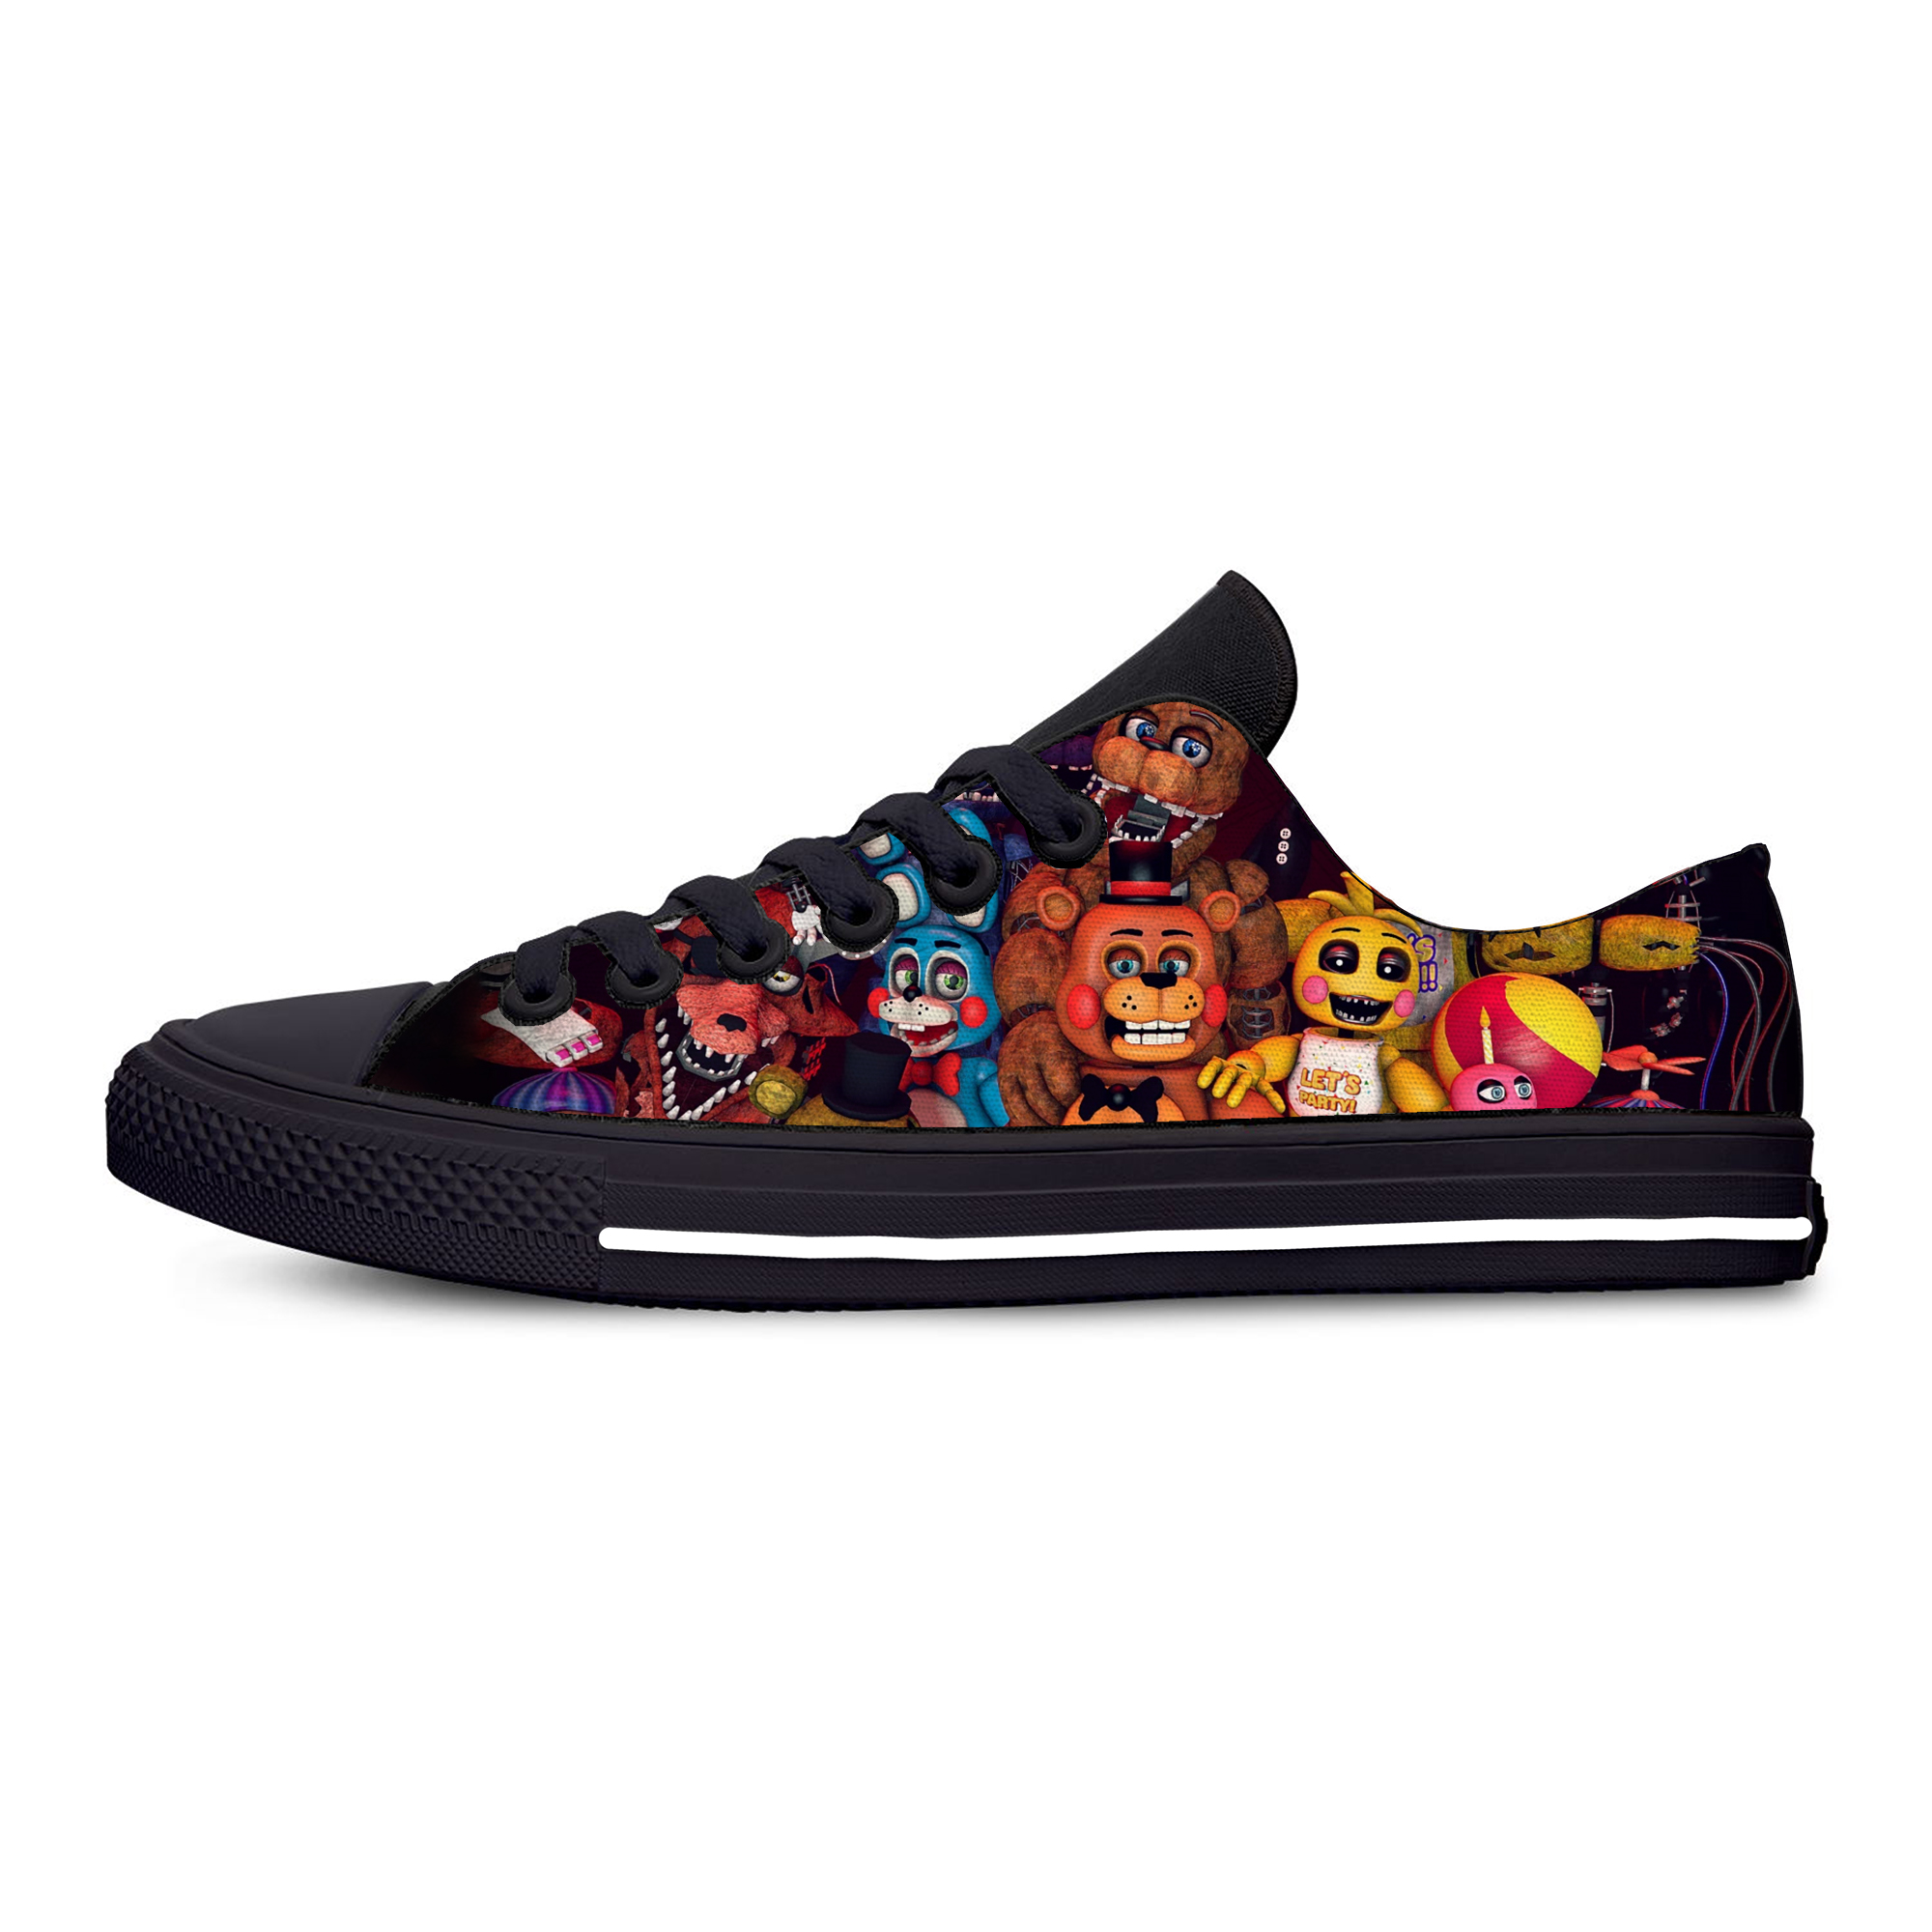 Five Nights At Freddy Fnaf Fashion Funny Horror Casual Canvas Shoes Low Top Lightweight Breathable 3D Printed Men Women Sneakers